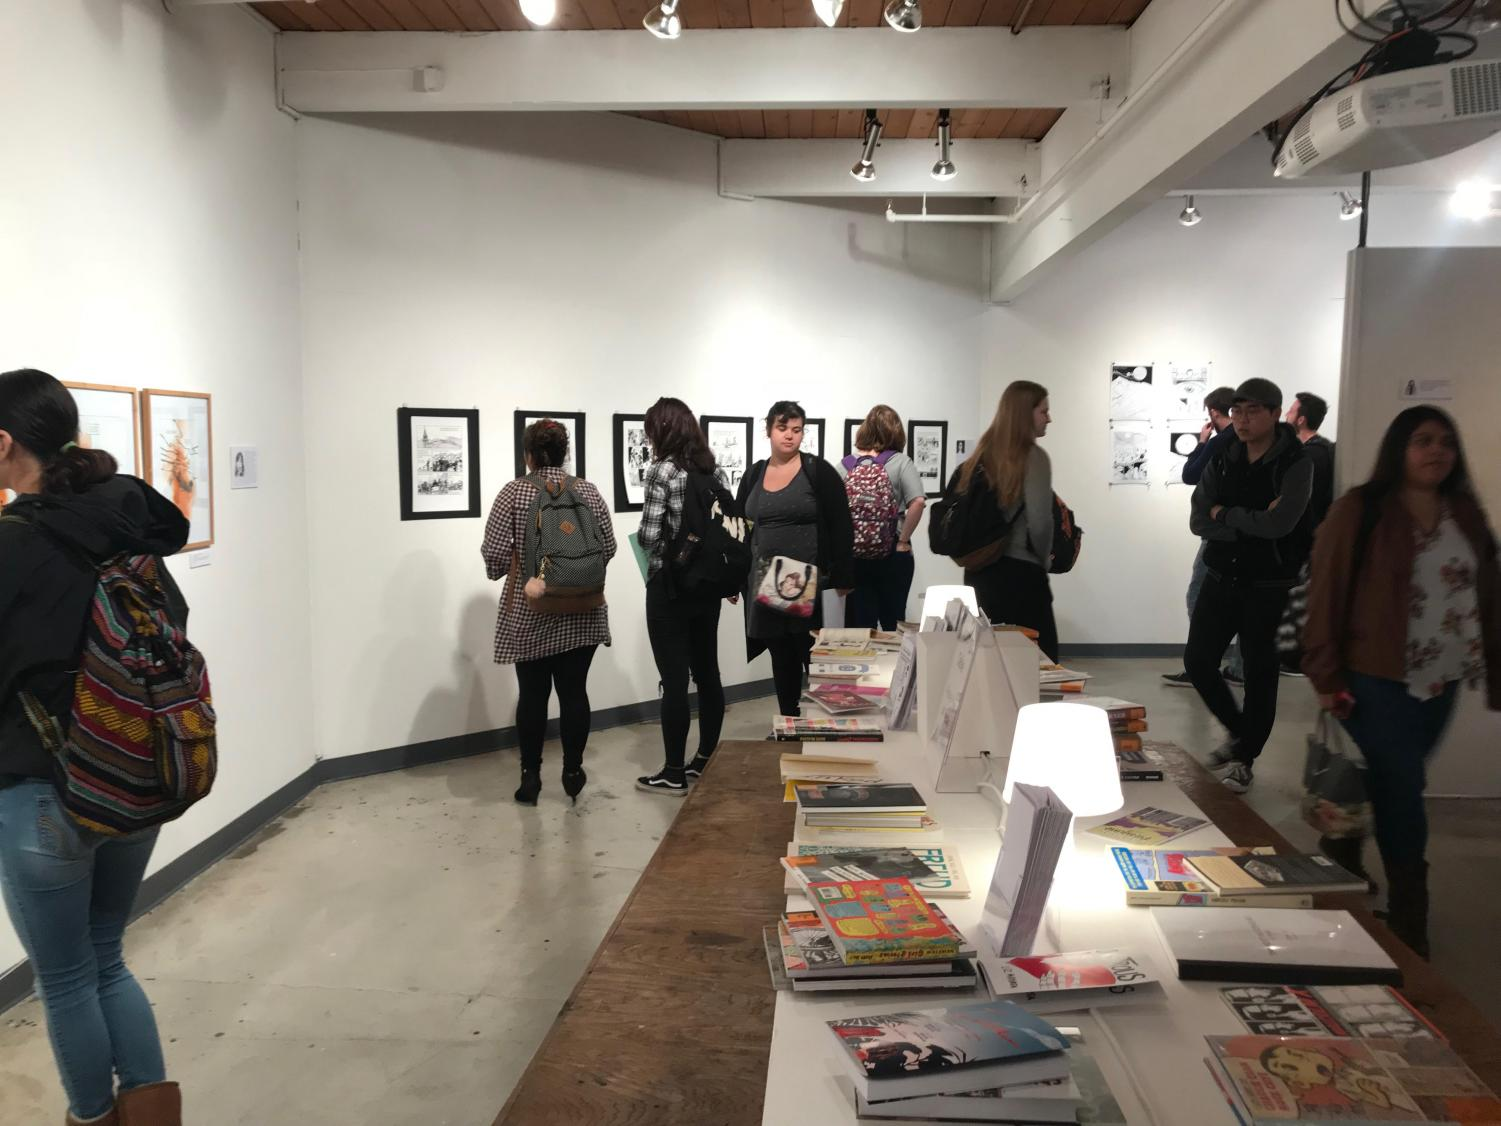 Viewers take in art at